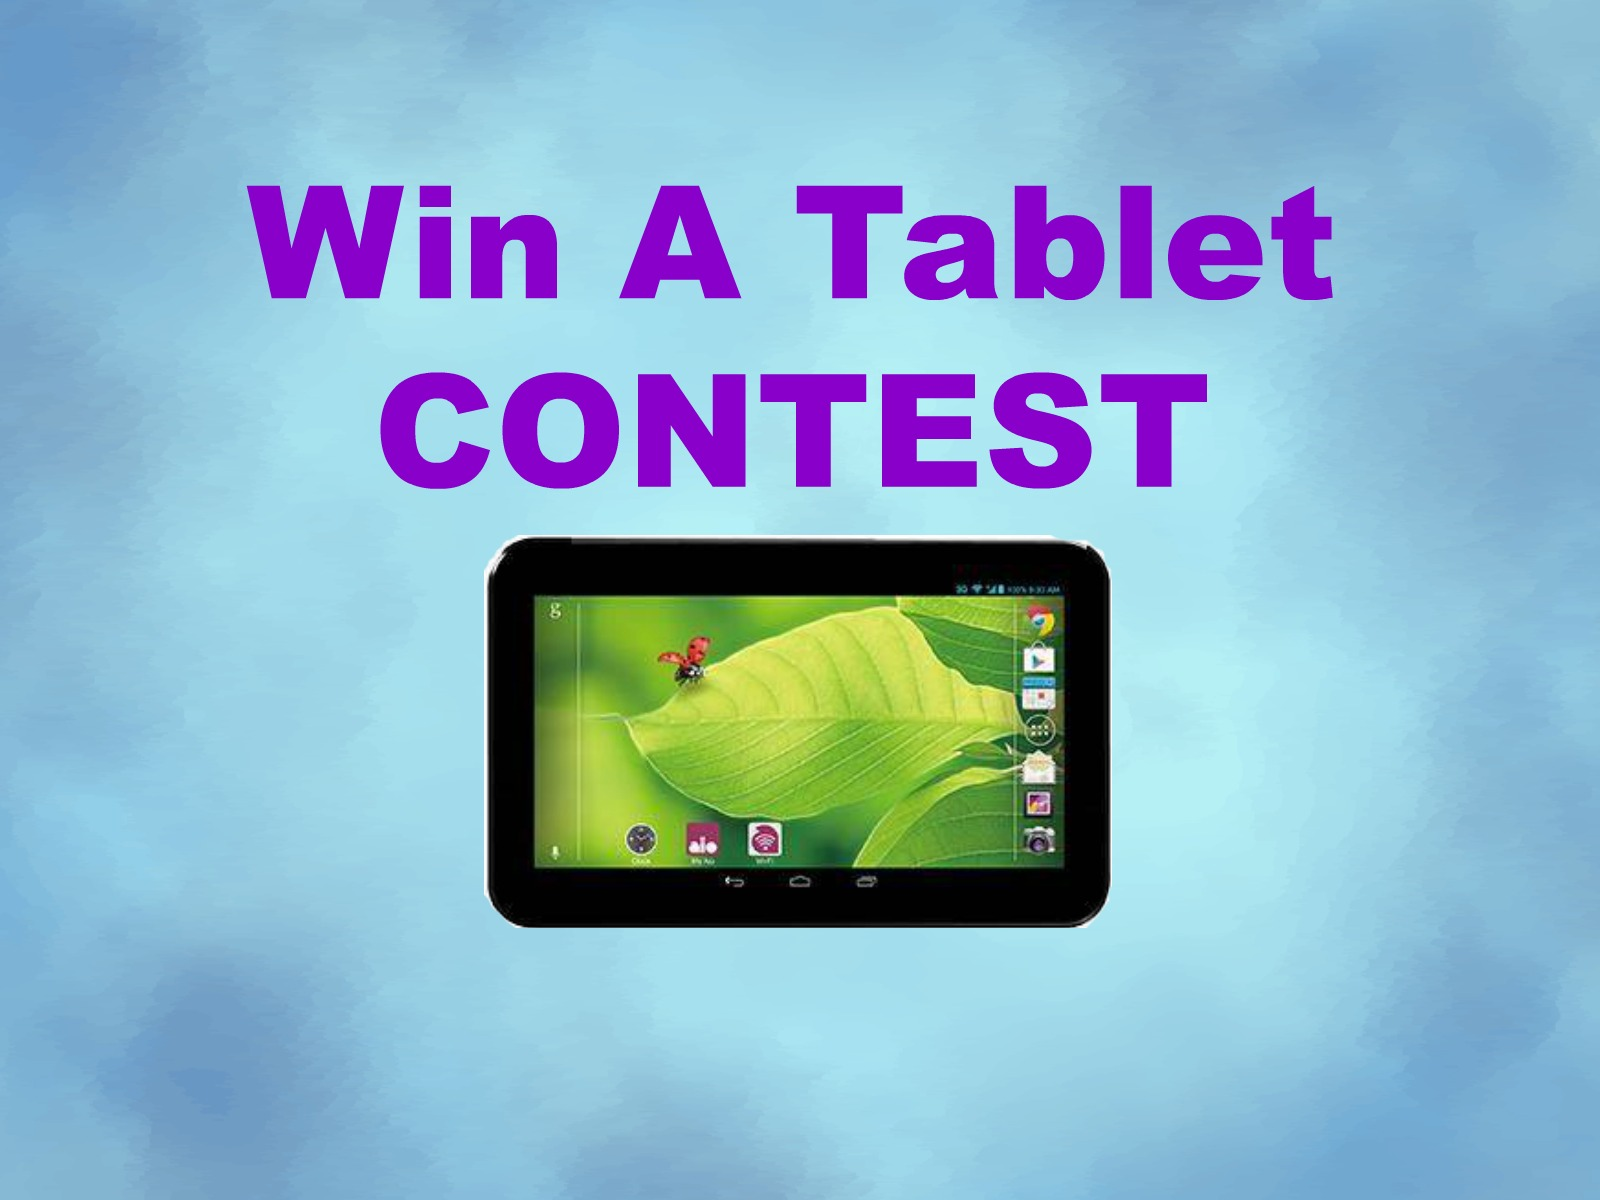 WIN A TABLET CONTEST